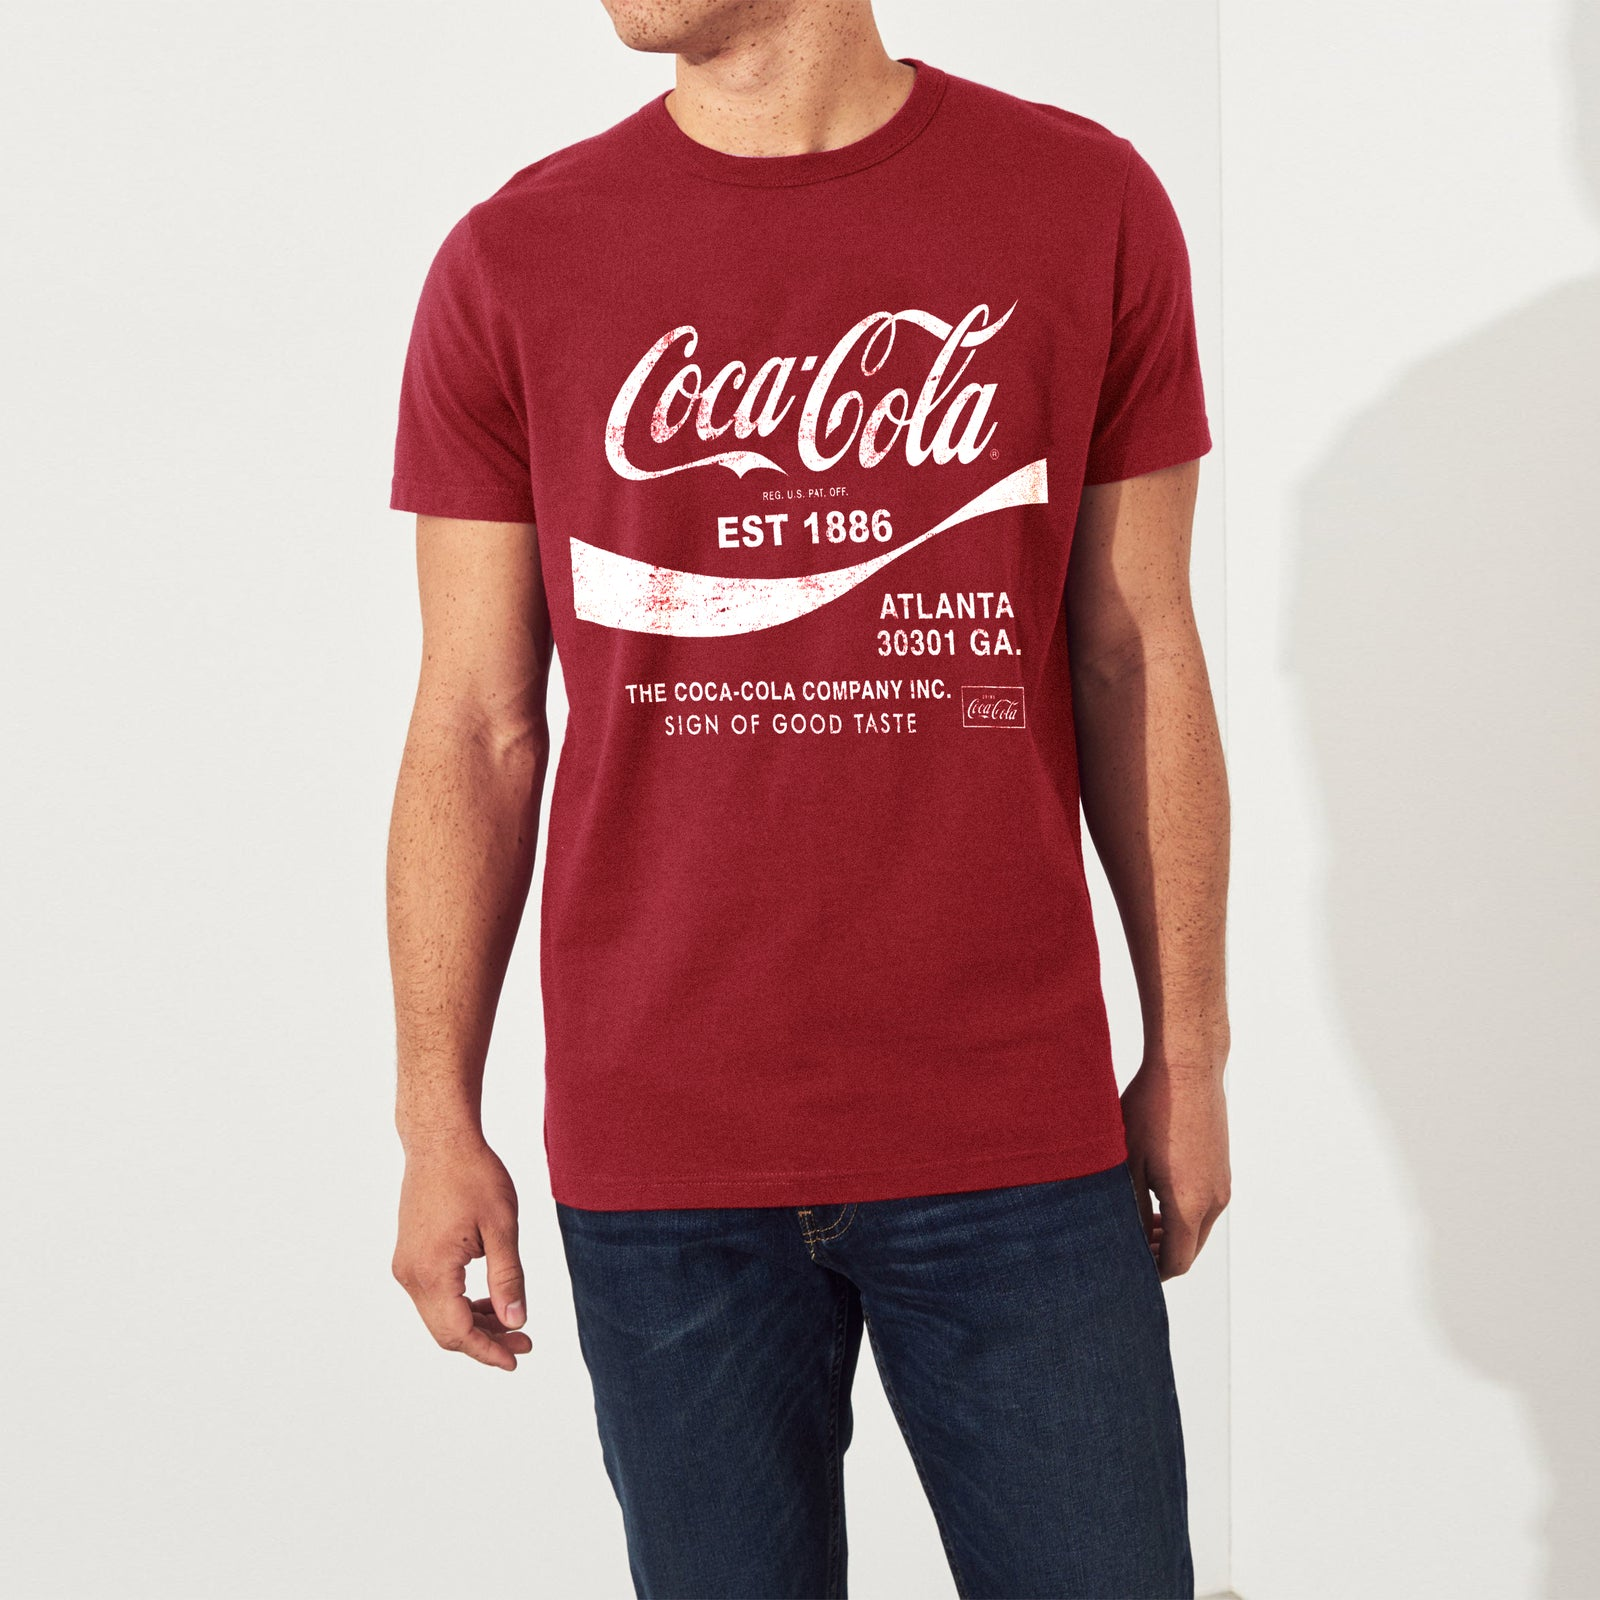 af8b9012c241 Coca-cola Crew Neck Single Jersey Half Sleeve Tee Shirt For Men-Carrot Red